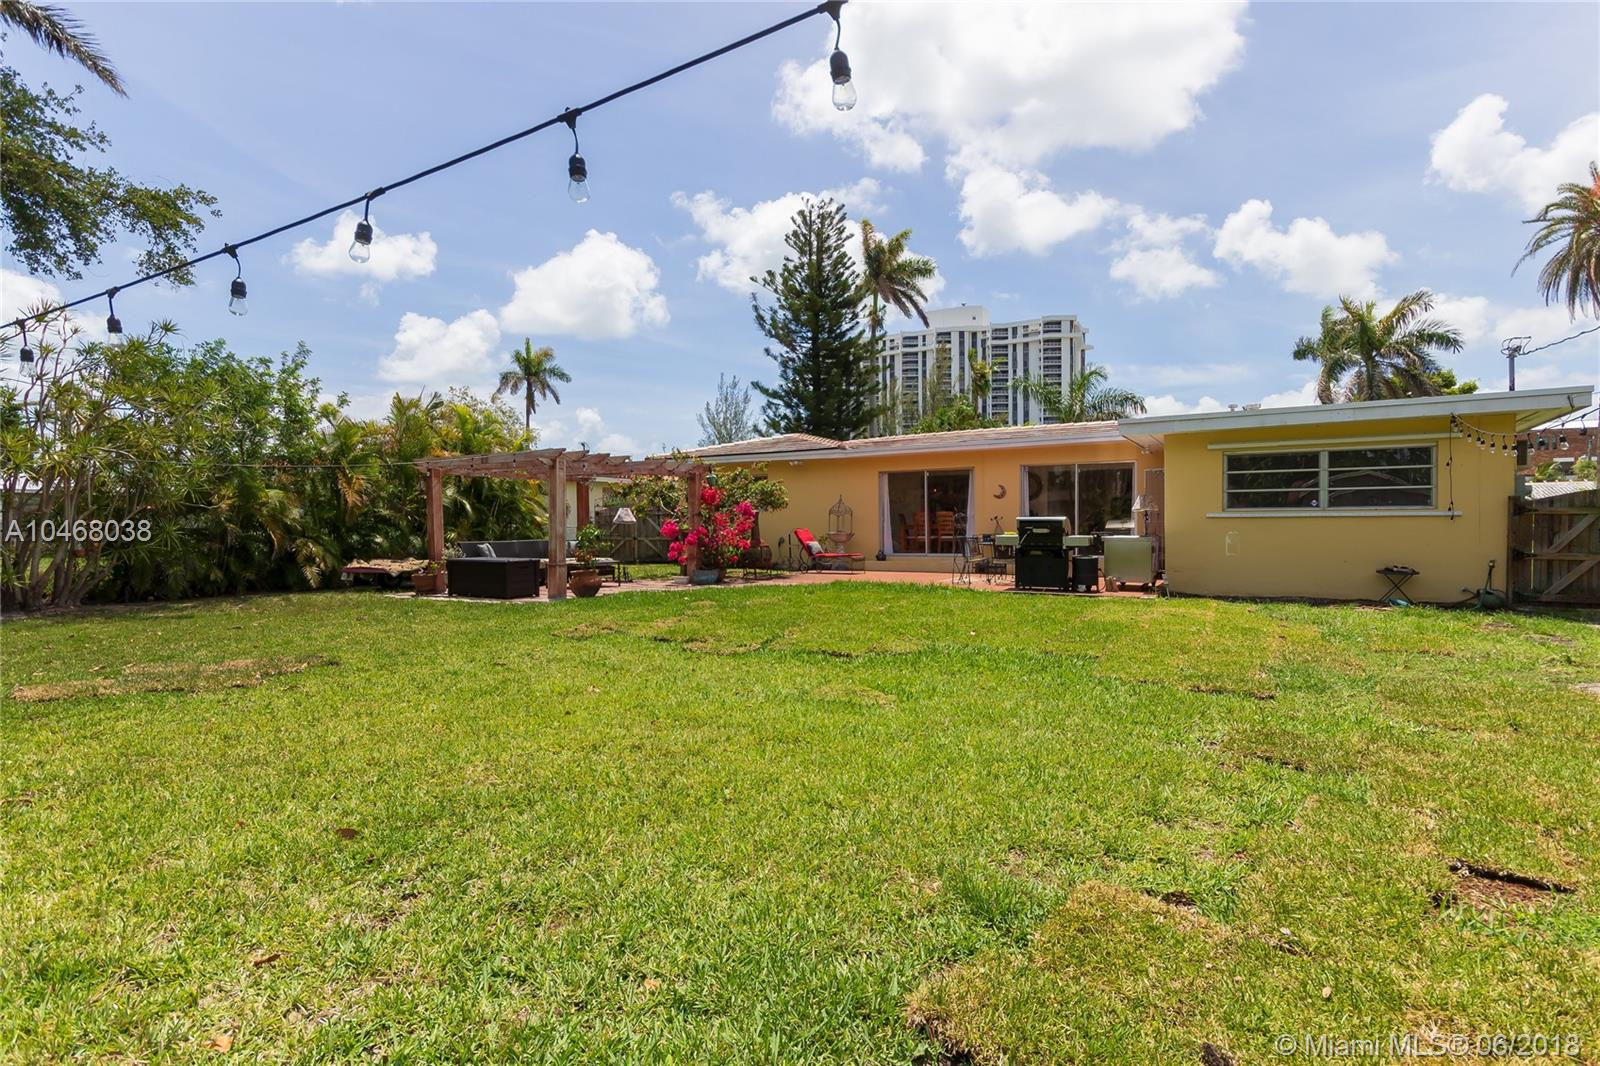 1575 Ne 108th St, Miami, FL 33161